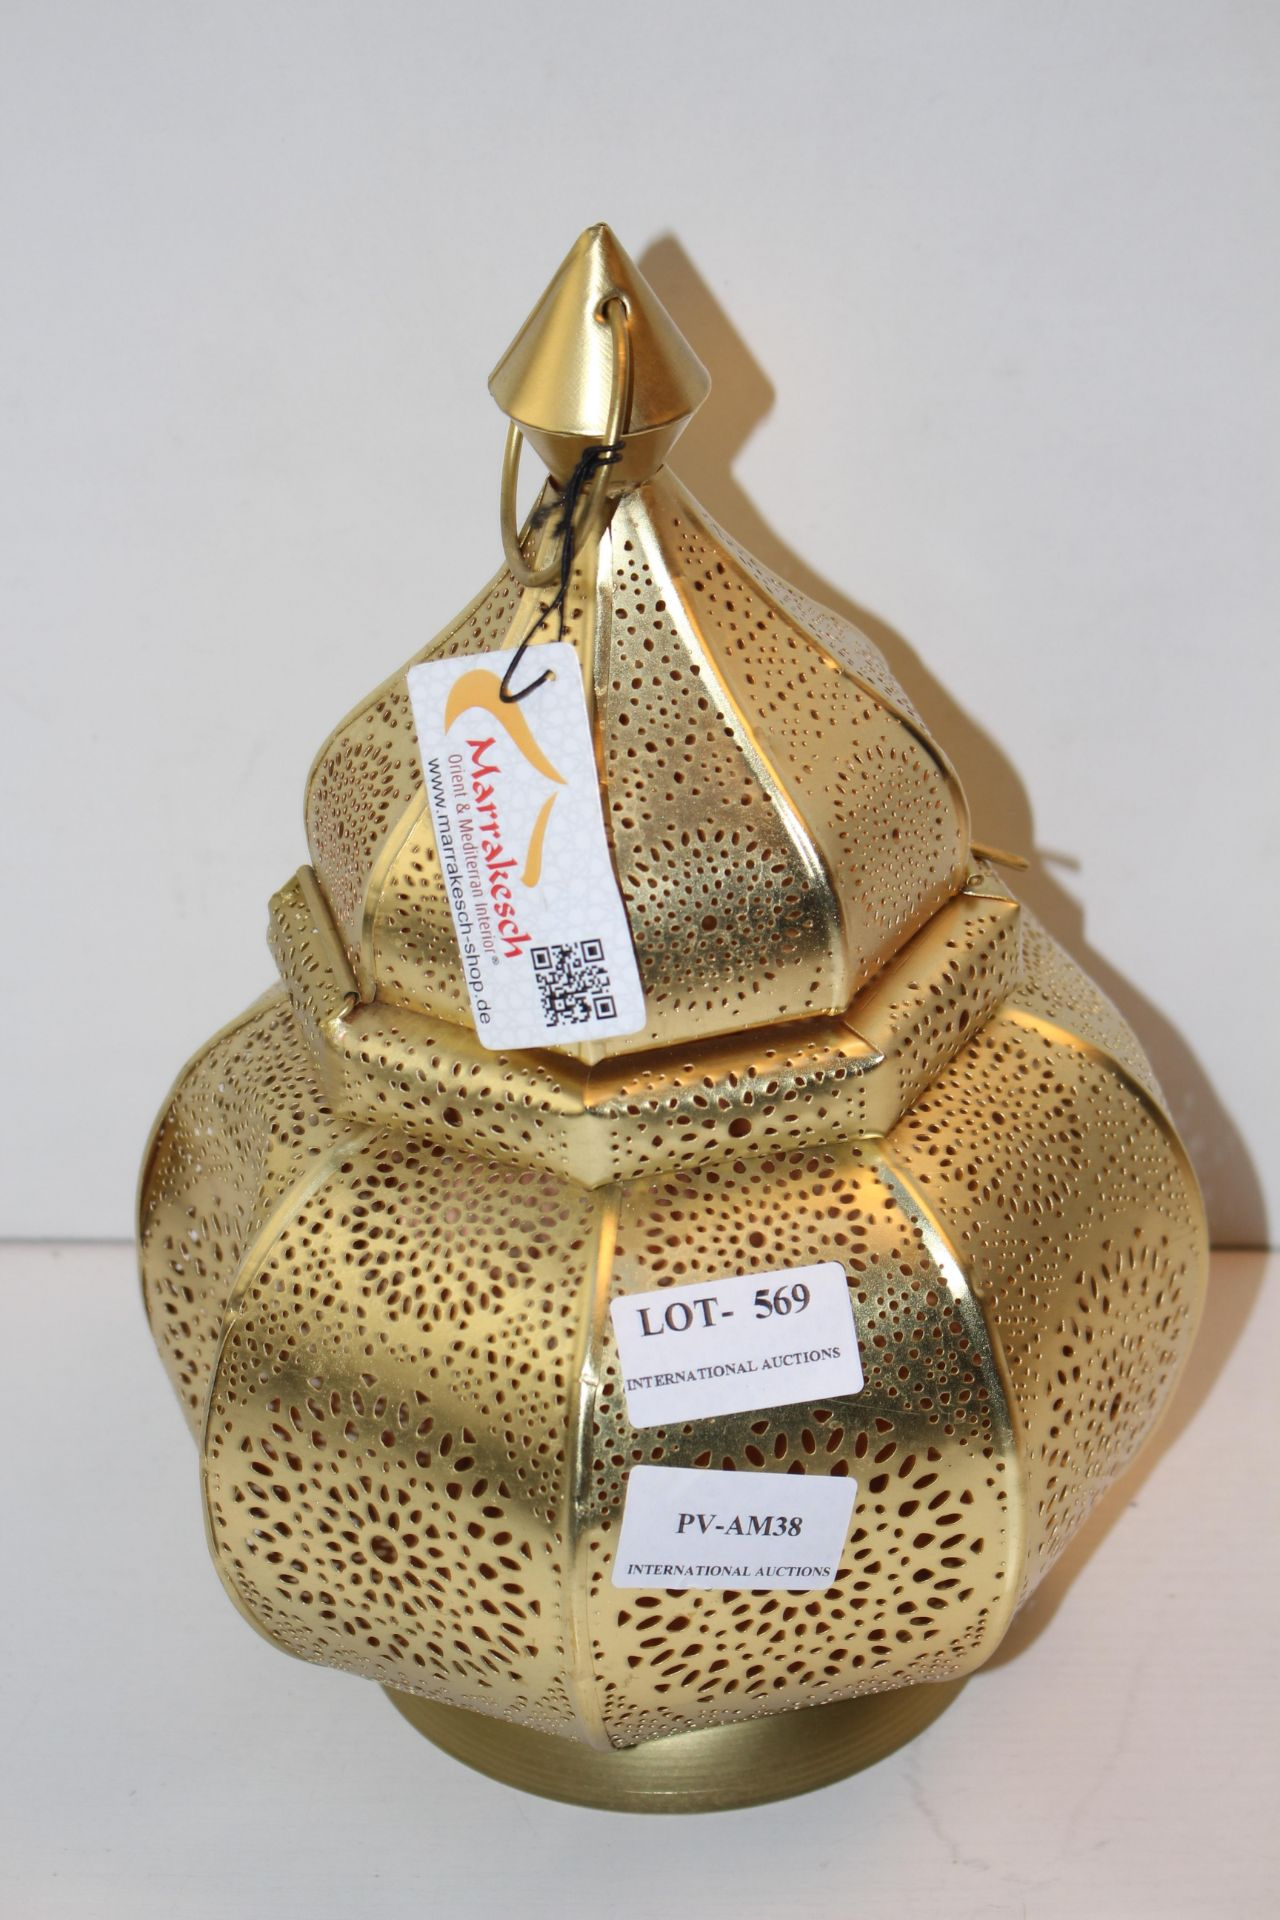 DECORATIVE ORNAMENT Condition ReportAppraisal Available on Request- All Items are Unchecked/Untested